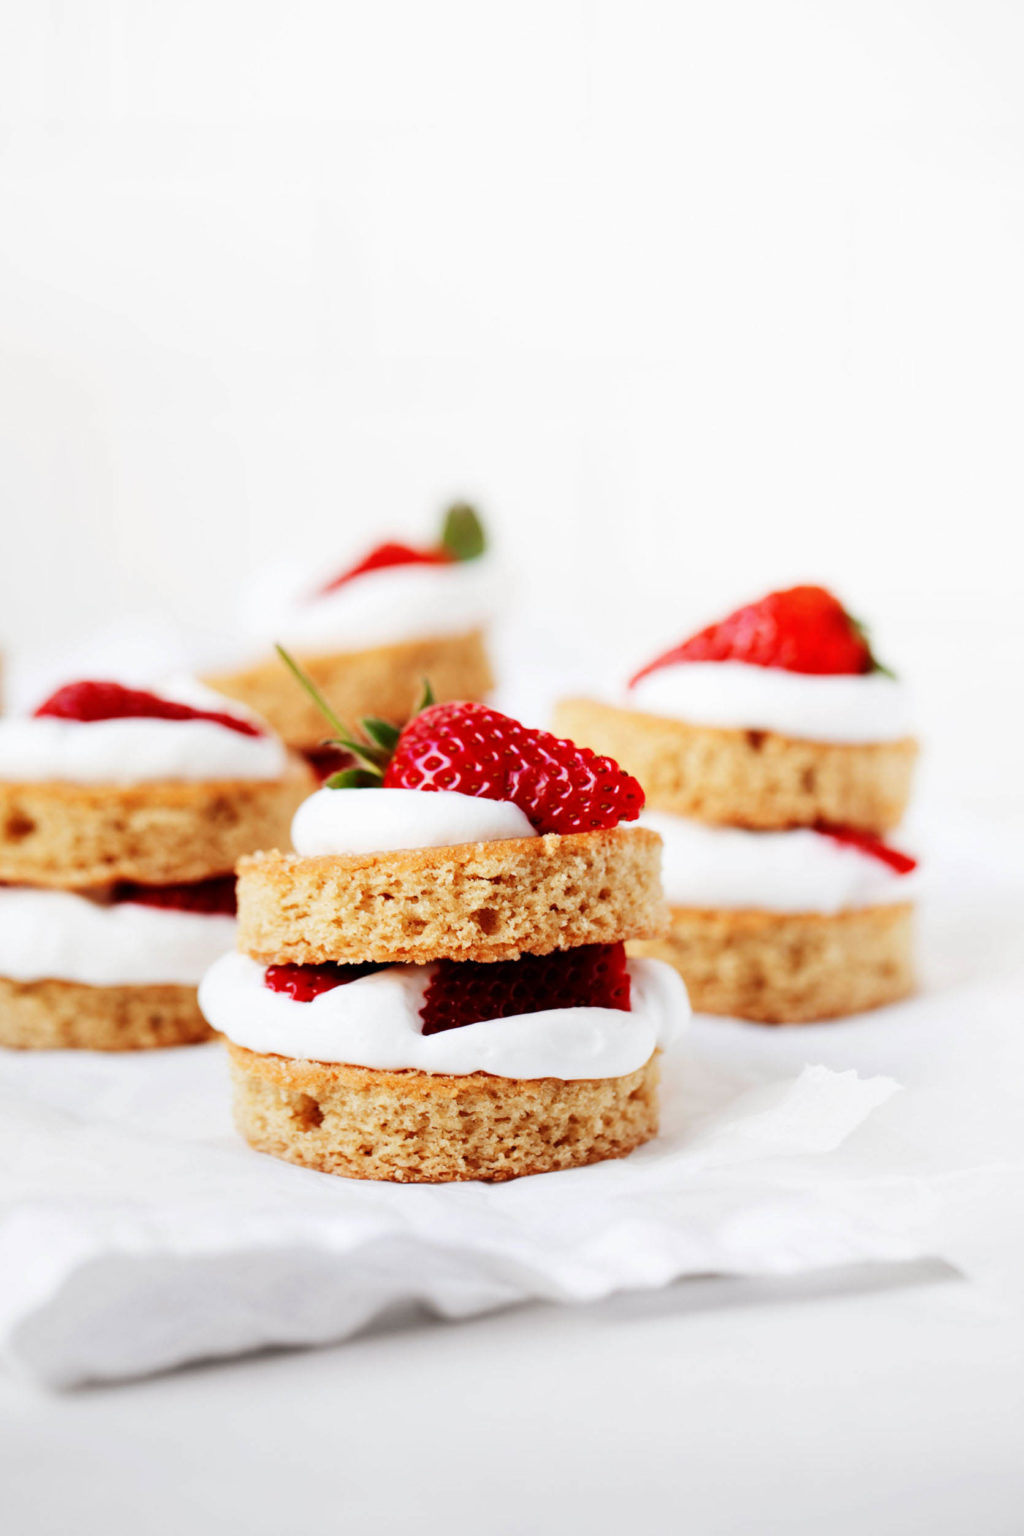 Four vanilla cakes have been stuffed with strawberries and cream. They're resting on a white sheet of crumpled parchment paper.